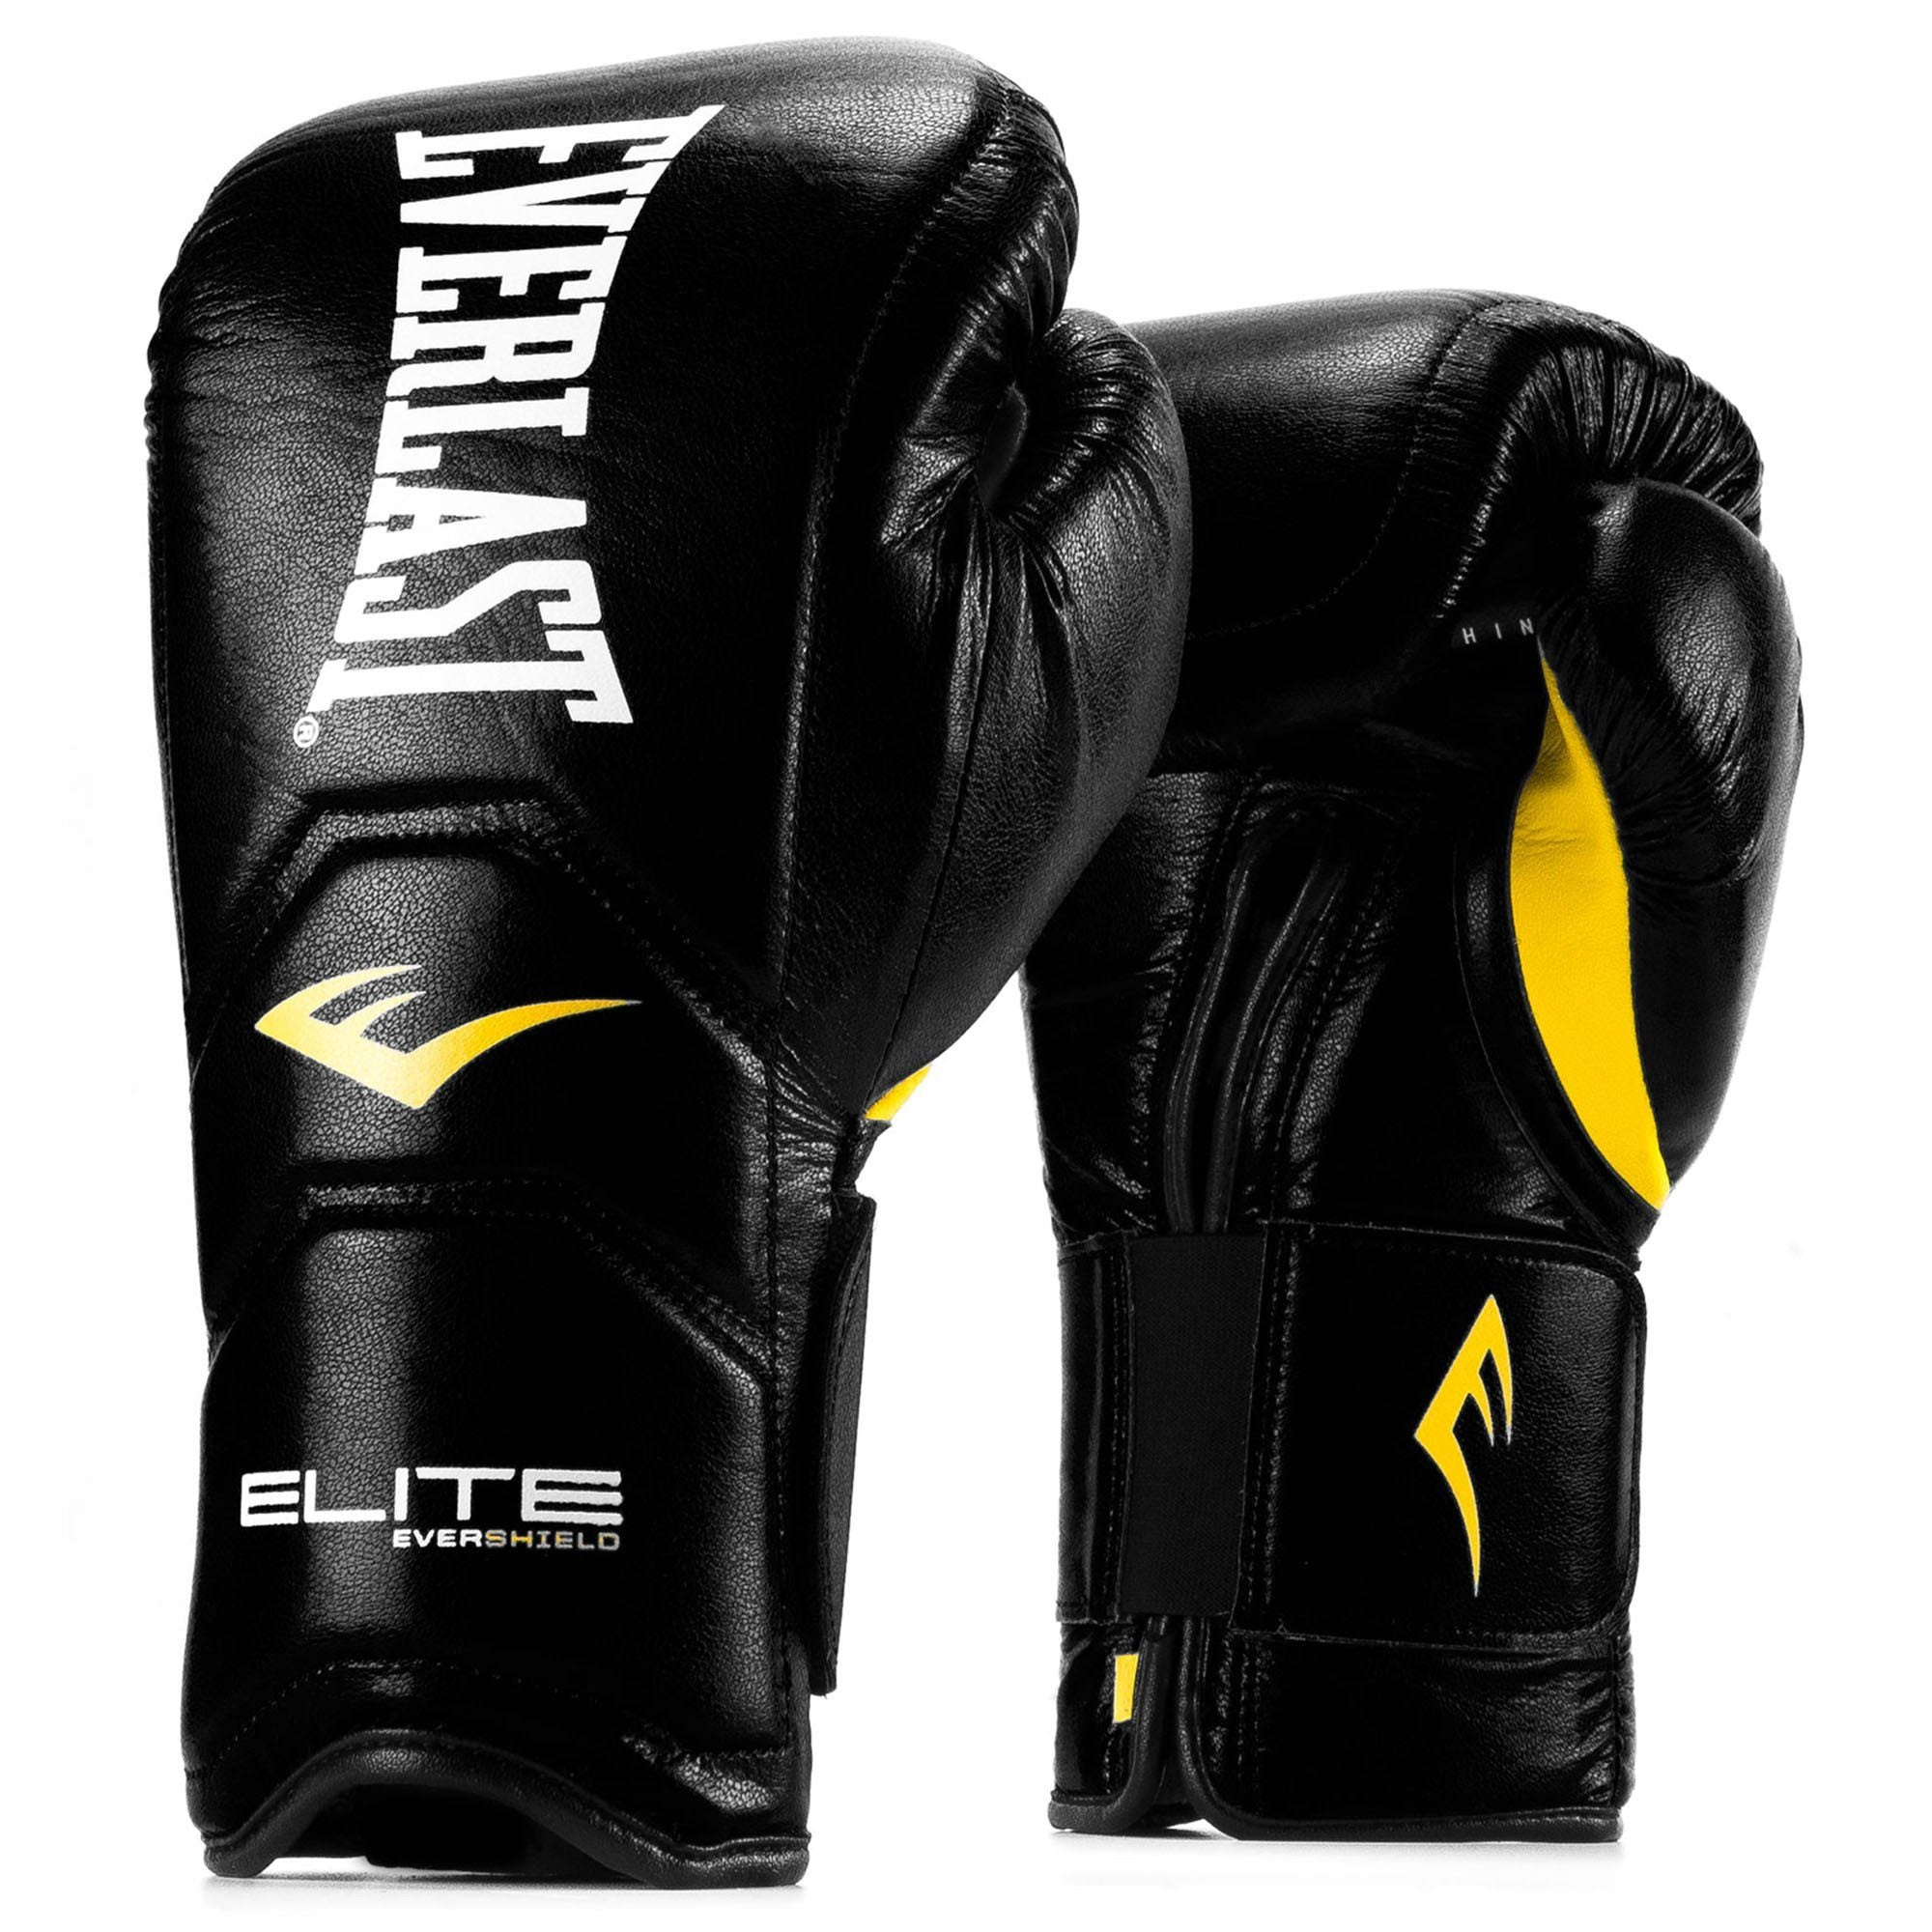 Everlast Elite Hook & Loop Training Glove by Everlast Canada